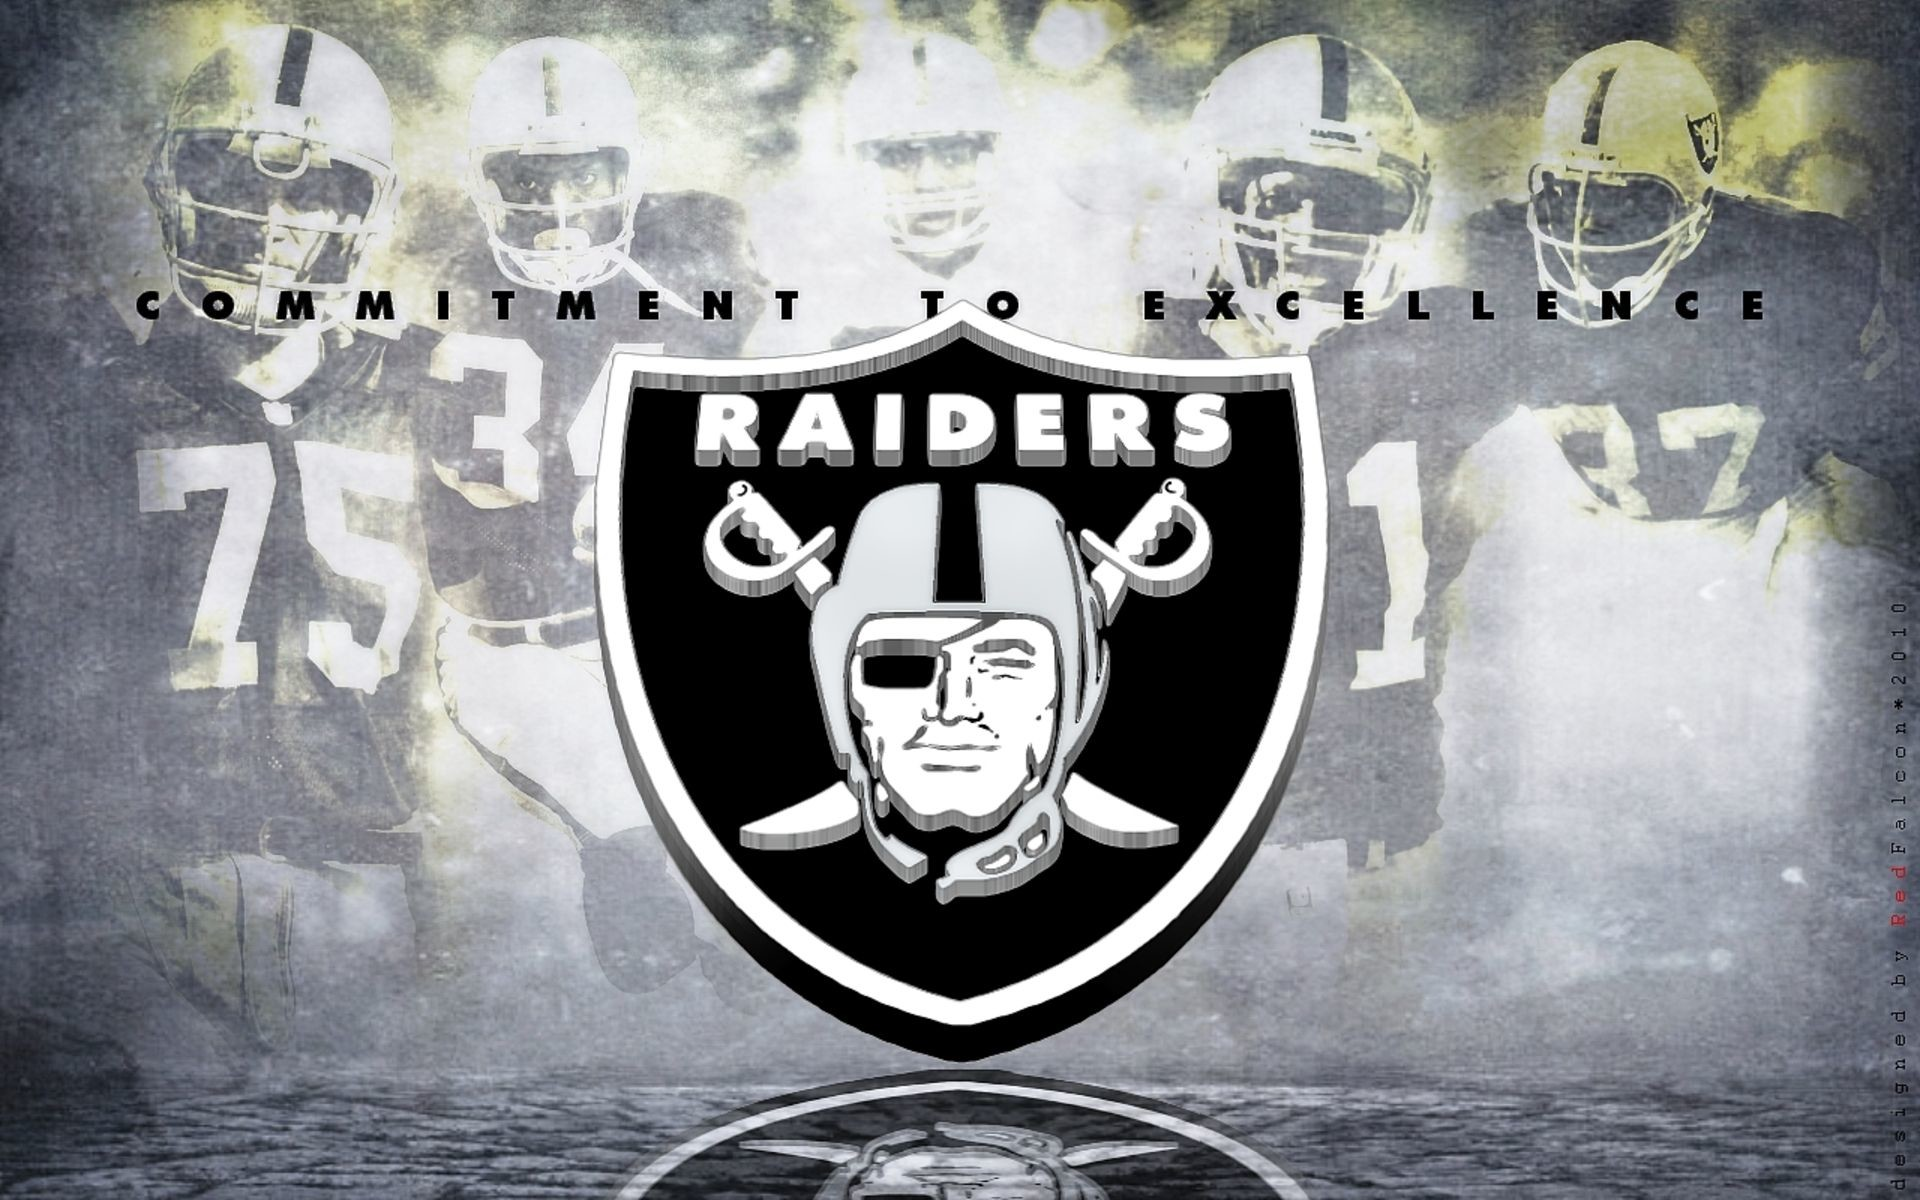 Raider nation wallpaper 66 images 1920x1200 oakland raiders logo wallpaper 4816 1920x1200 px wallpaperfort voltagebd Image collections